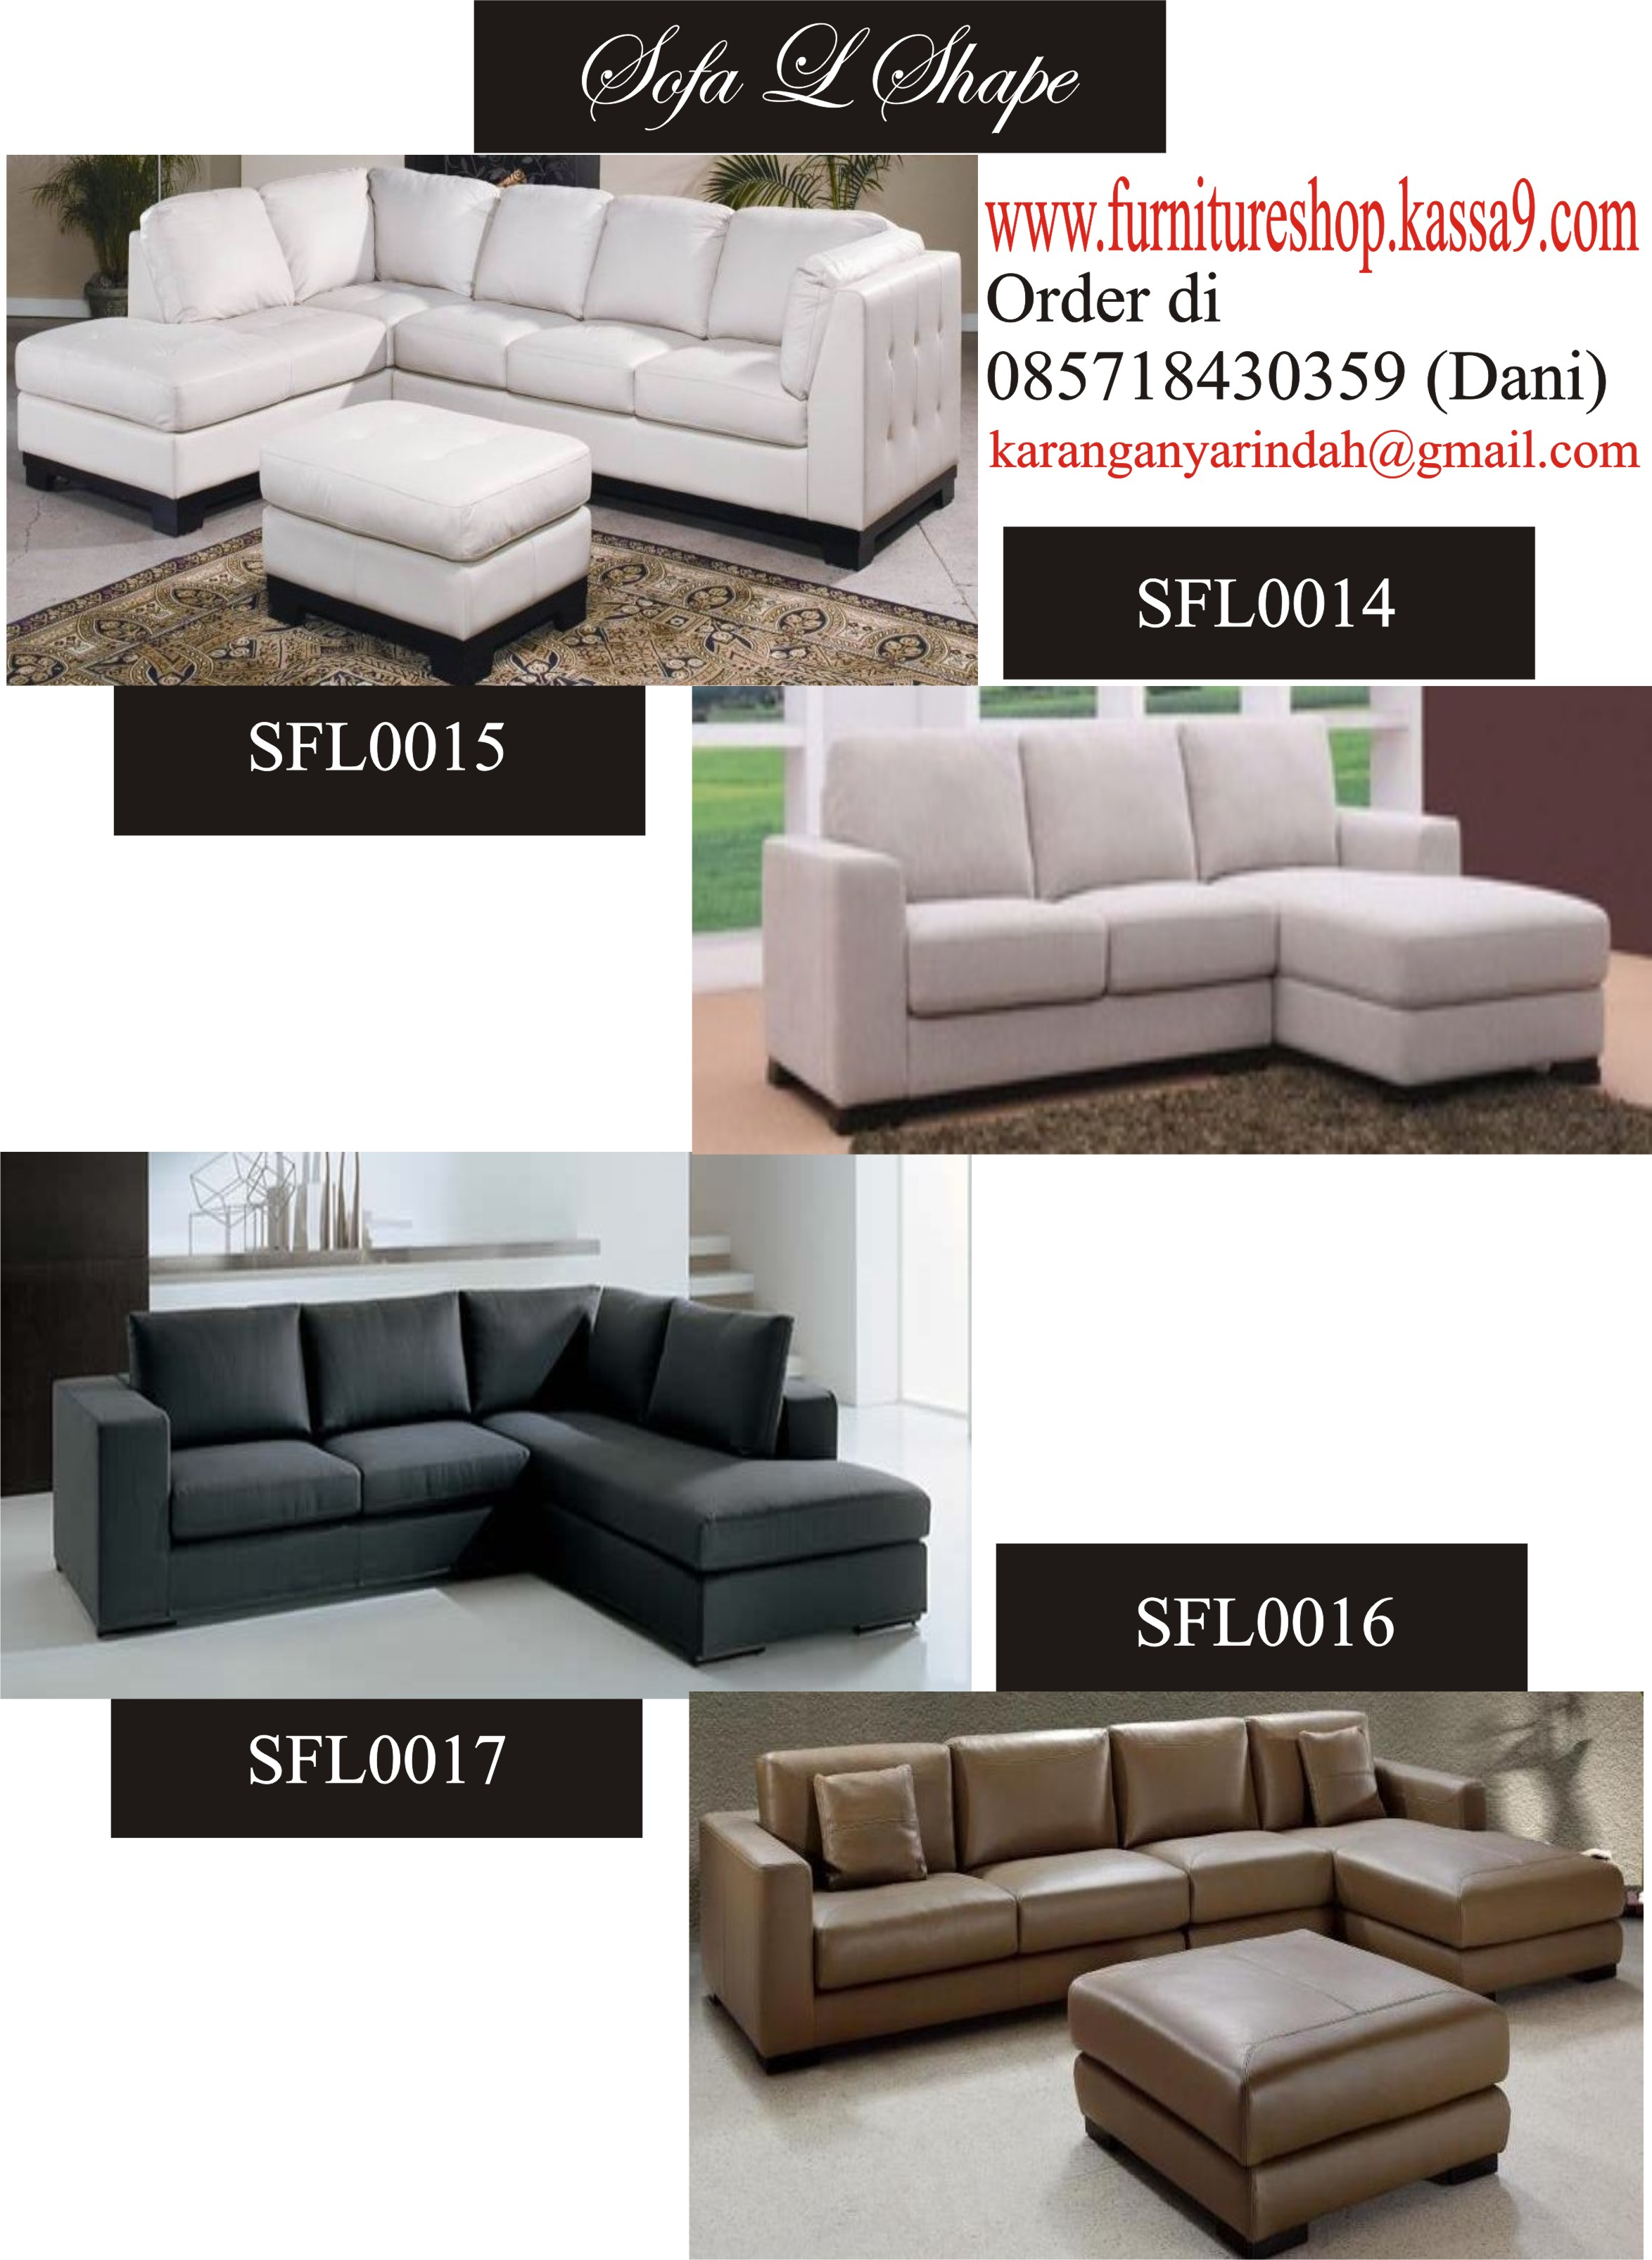 SFL1 SOFA L SHAPE 14 17